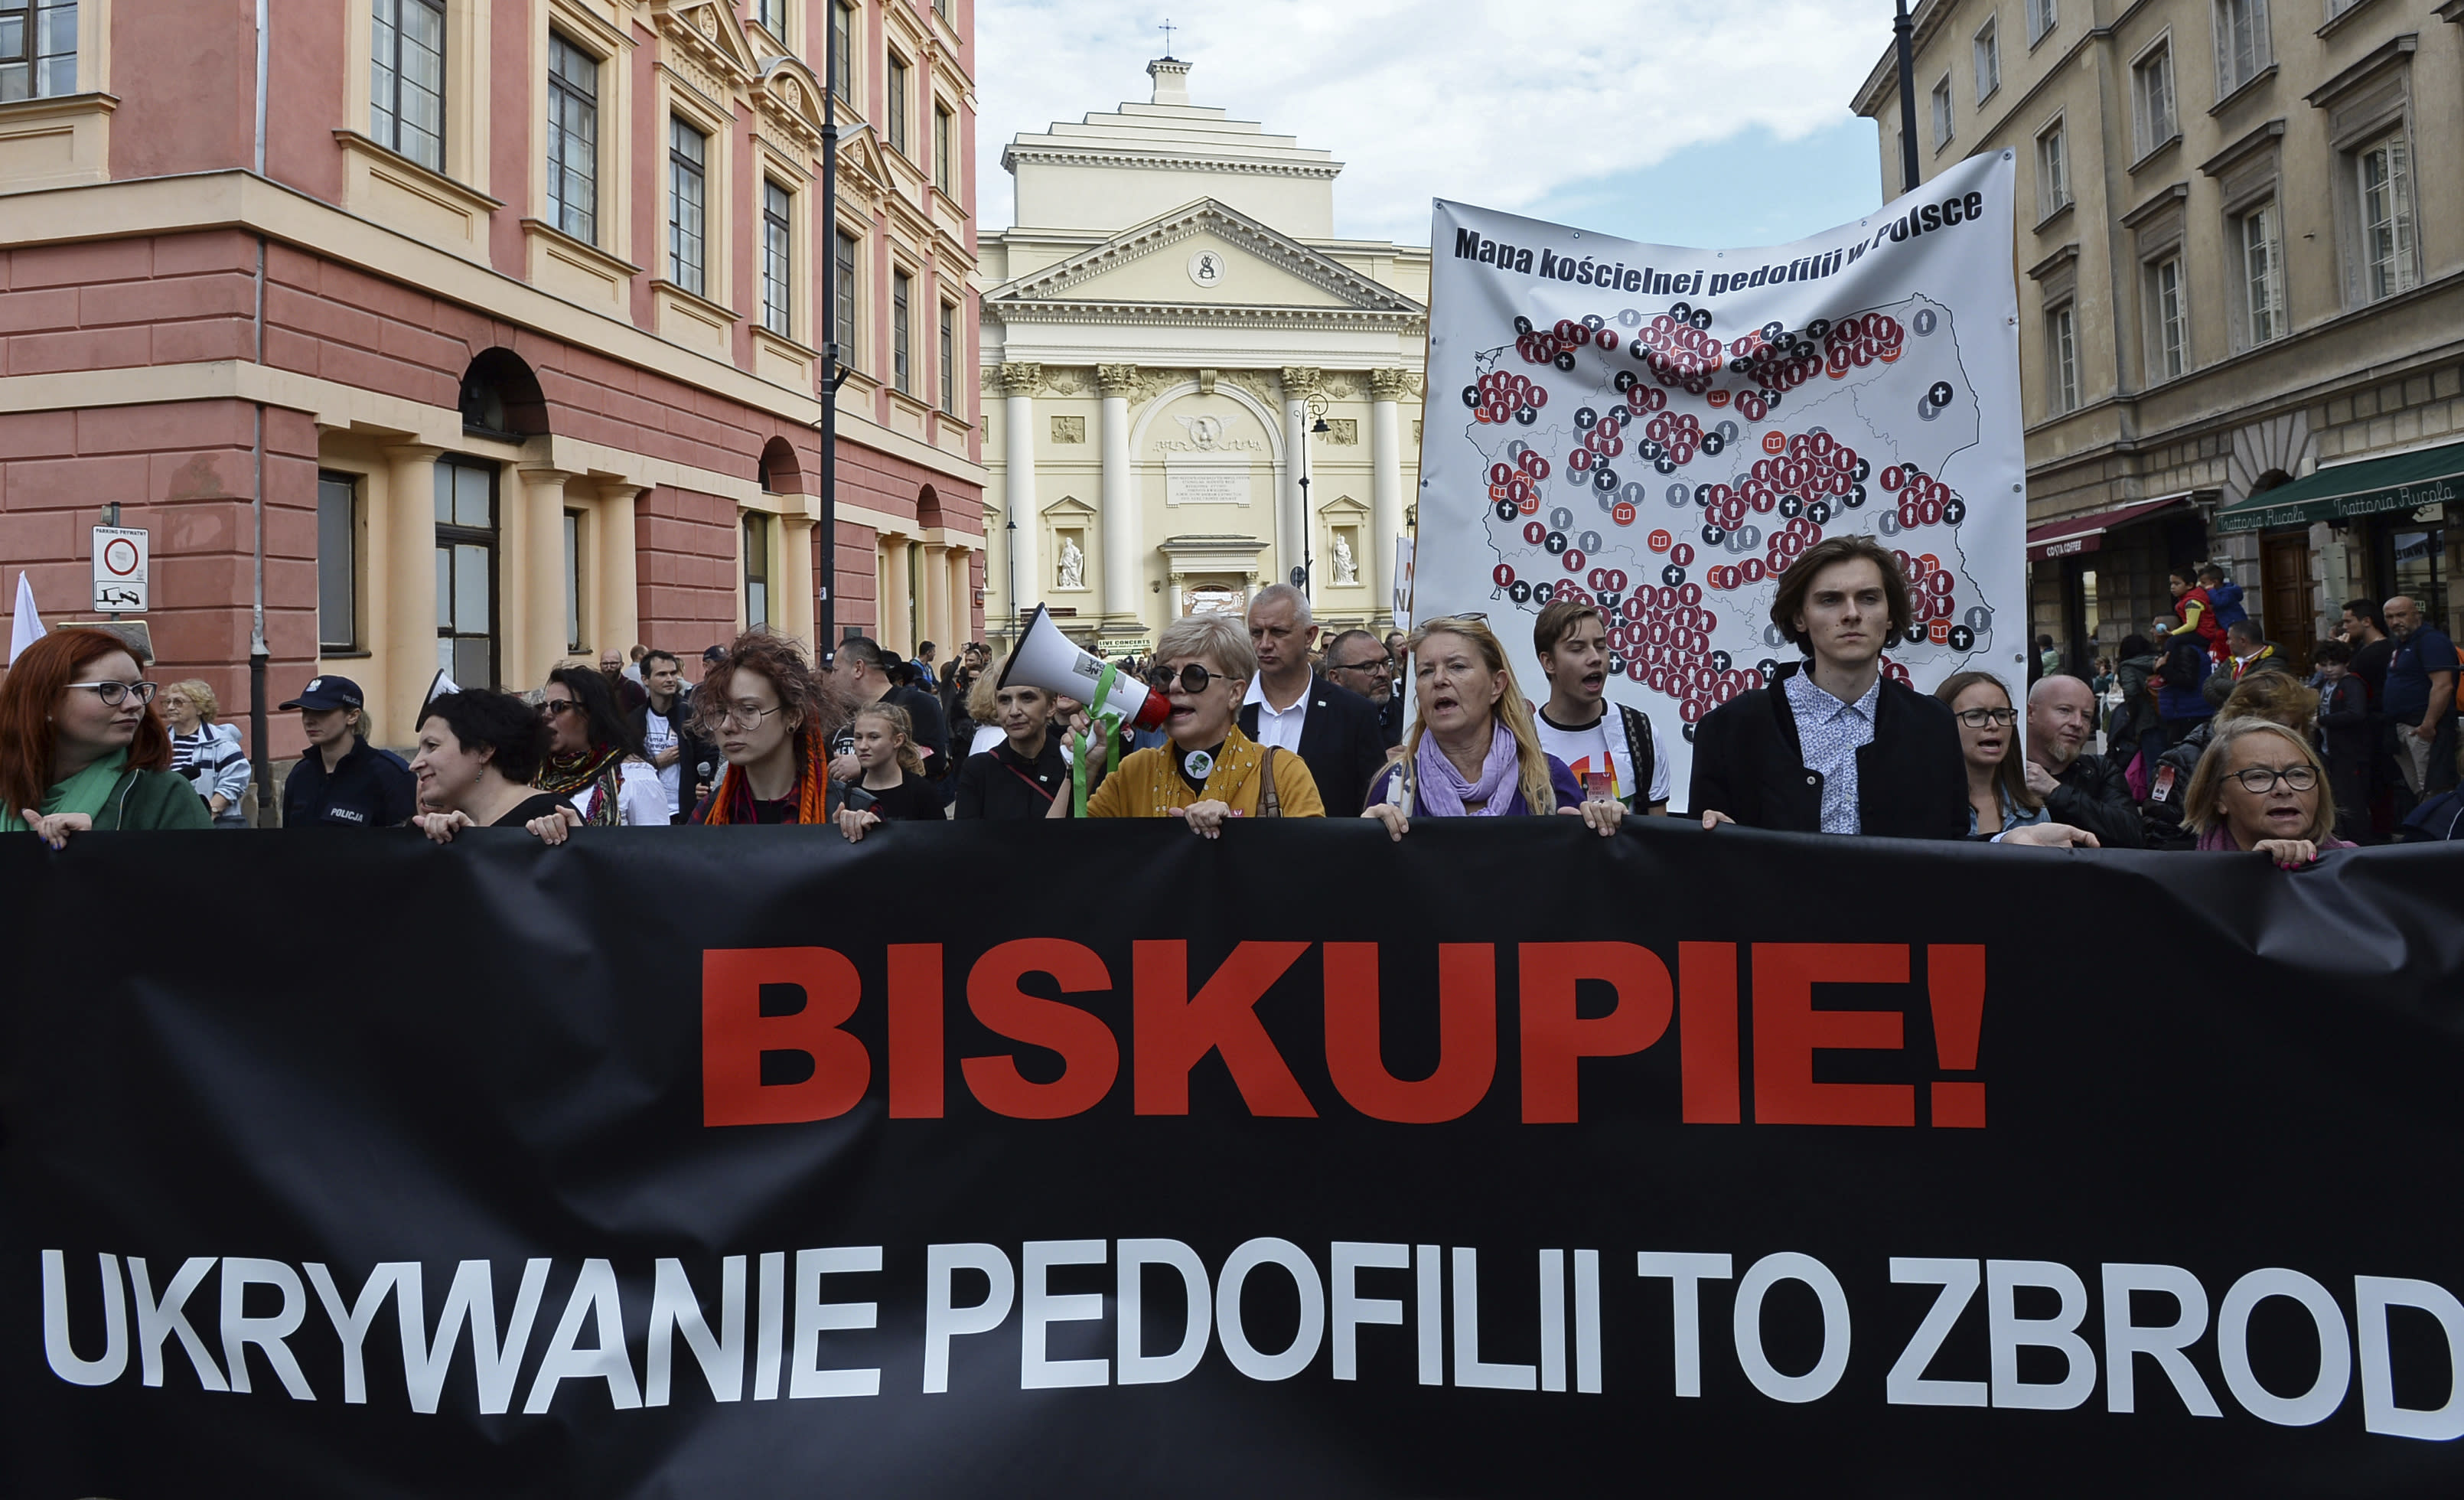 """Protesters carry a map of Poland with 255 documented cases of sexual abuse of minors by the country's Catholic priests, as they march in Warsaw, Poland, Sunday, Oct. 7, 2018, demanding the church to stop protecting pedophile priests. The writing on the banner reads: """"Bishop. Hiding Pedophilia is a Crime."""" (AP Photo/Alik Keplicz)"""